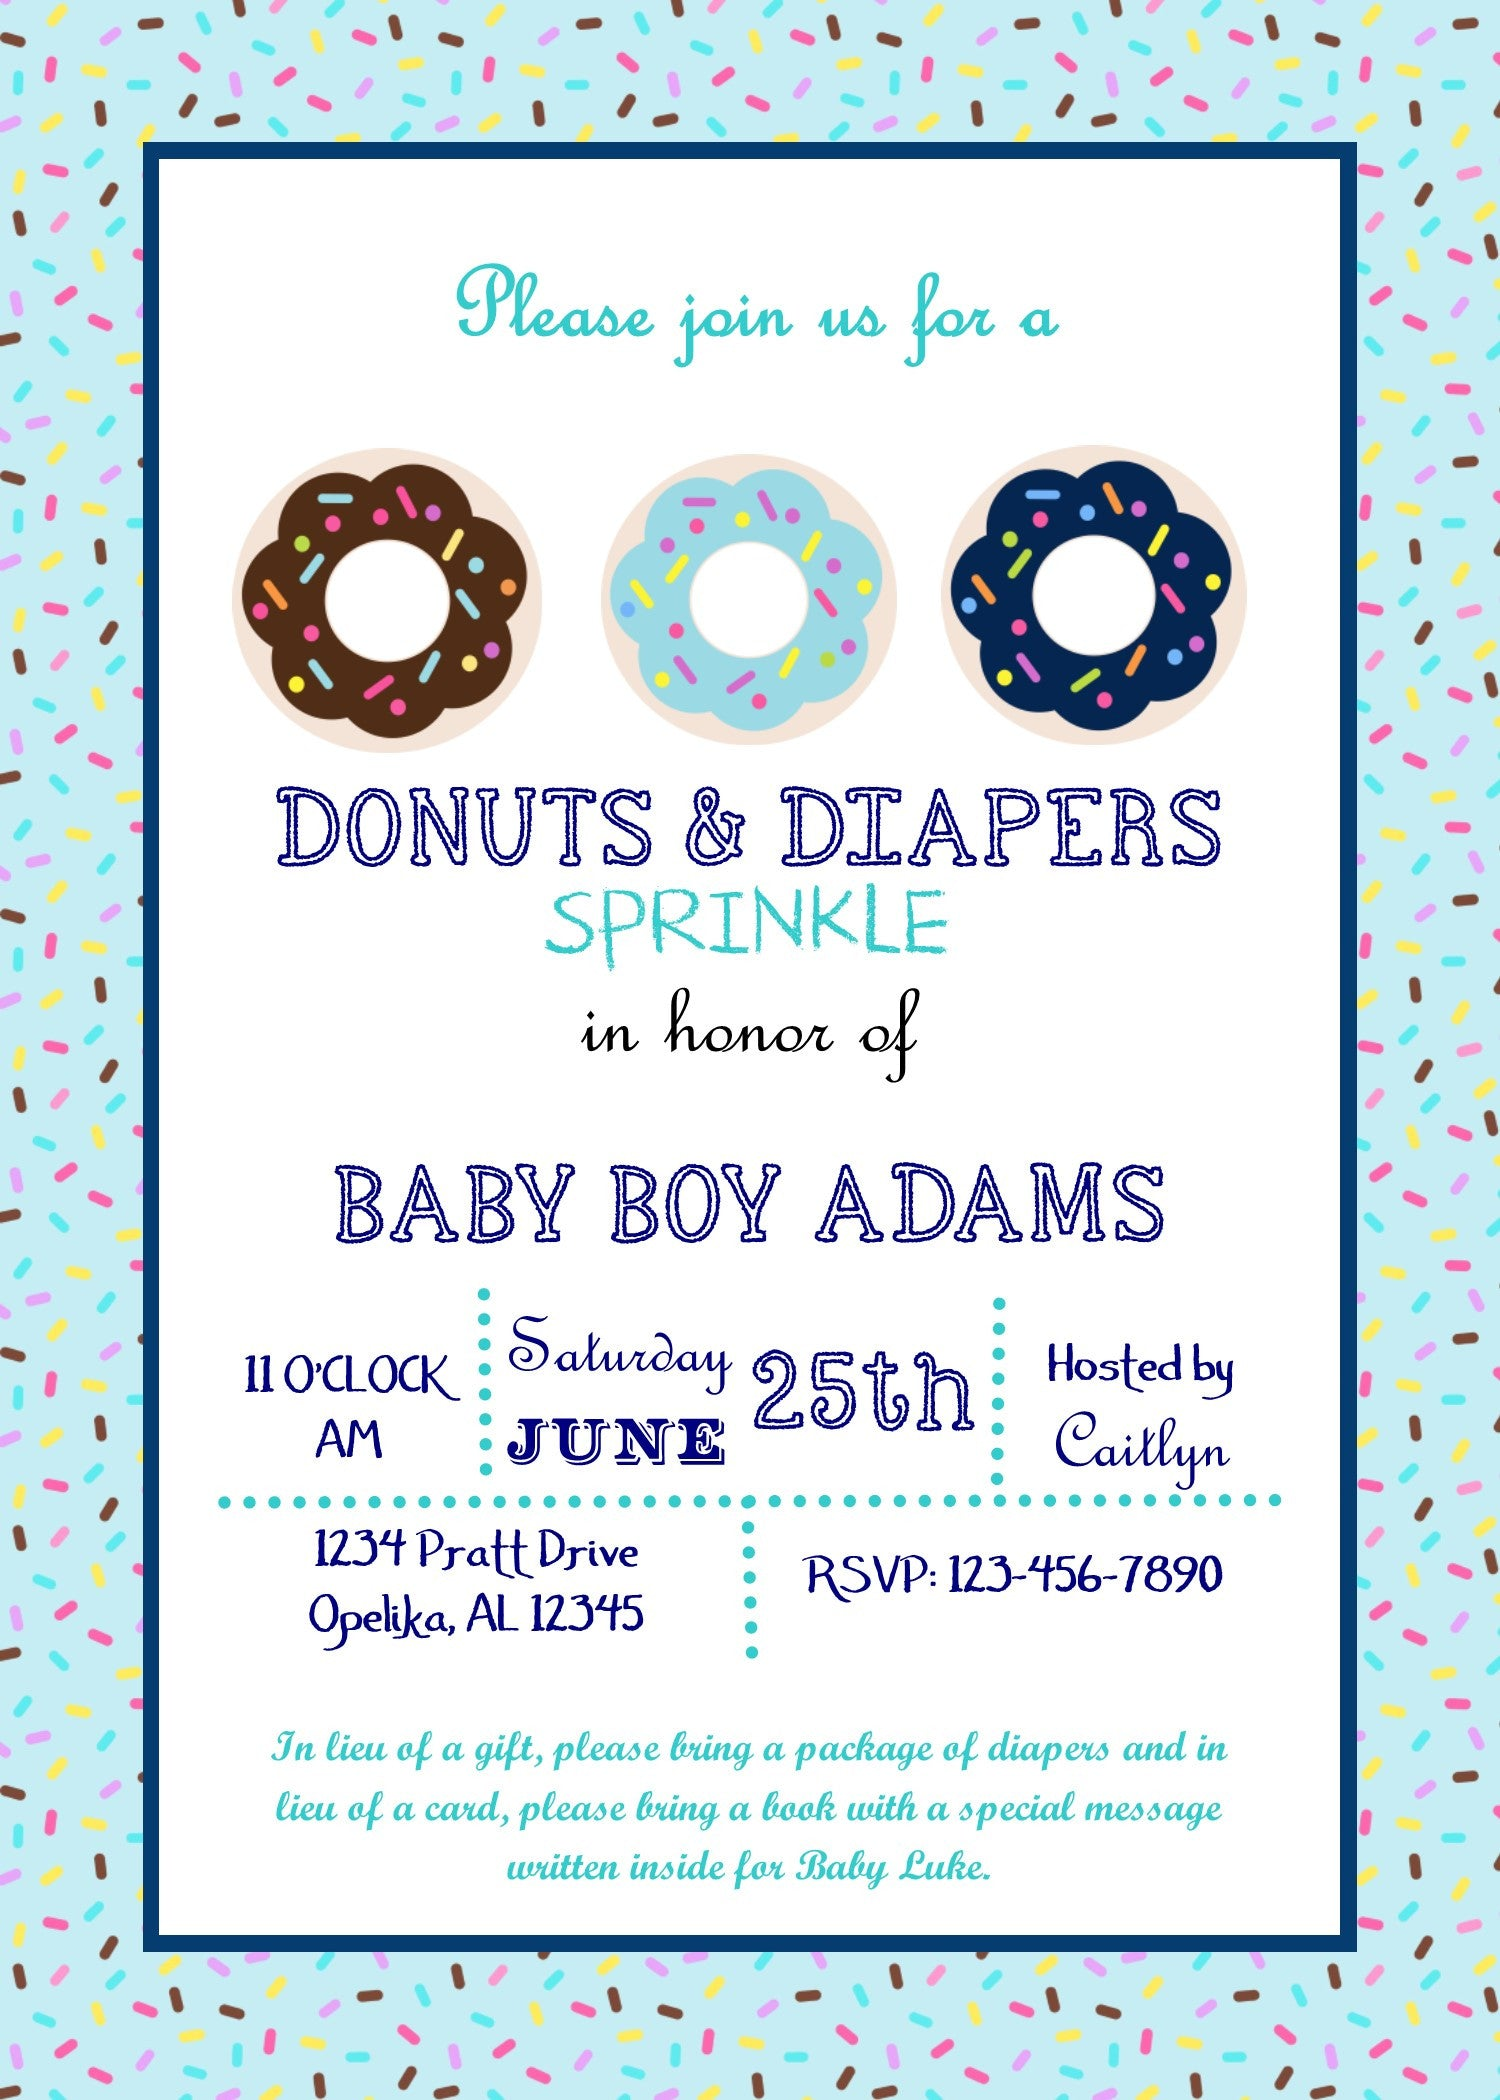 Donuts and Diapers Baby Shower Invitation – Party On Invites